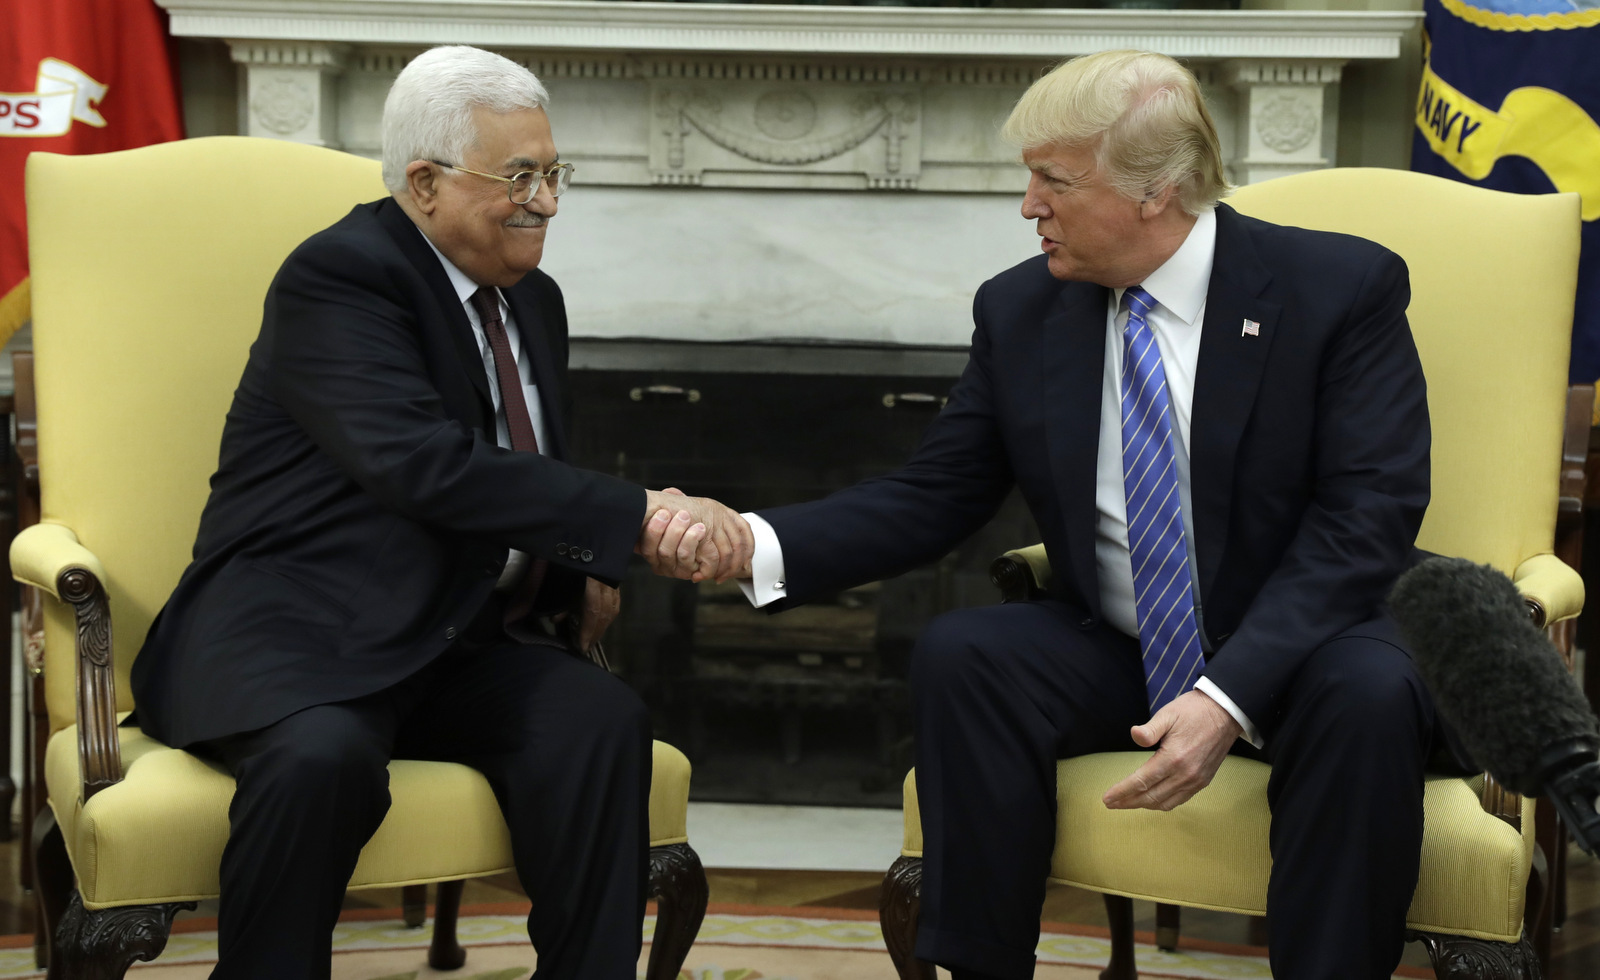 Trump Deletes Tweet Saying It Was 'An Honor' With Palestinian President